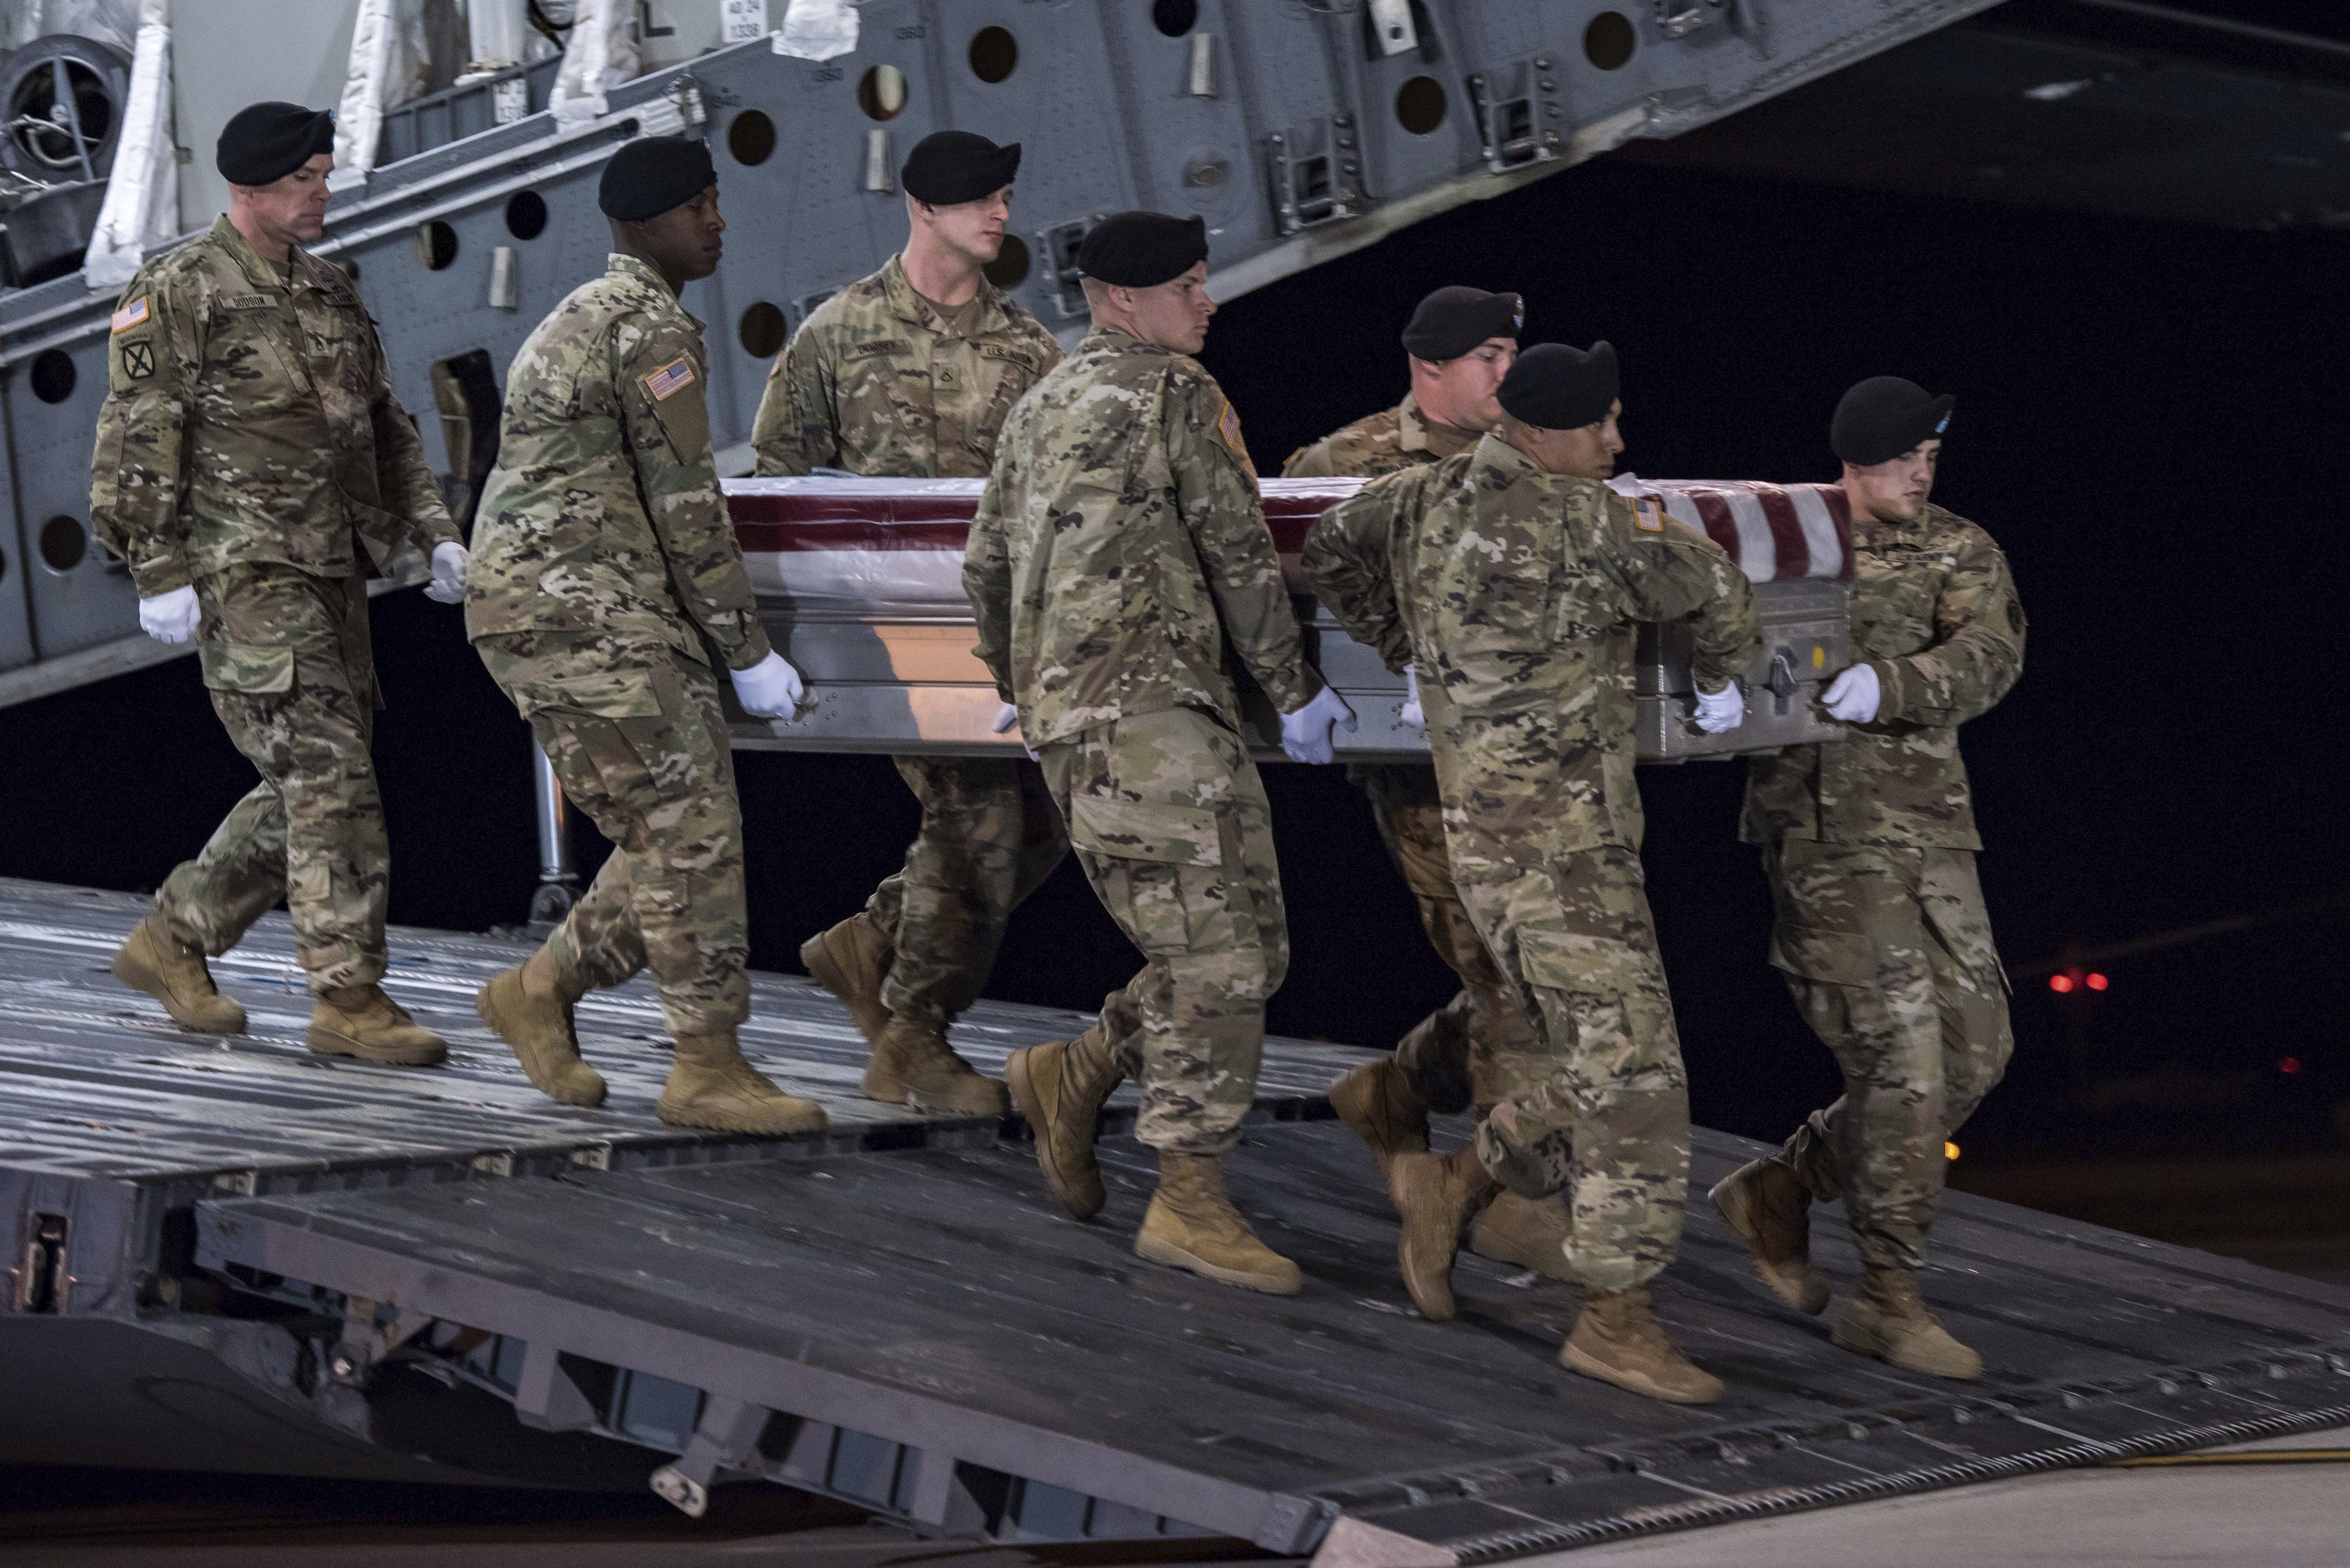 Soldiers carry a transfer case during a casualty return for Staff Sgt. Dustin M. Wright who was killed in an ambush on U.S. and Niger forces on Oct. 4, 2017.